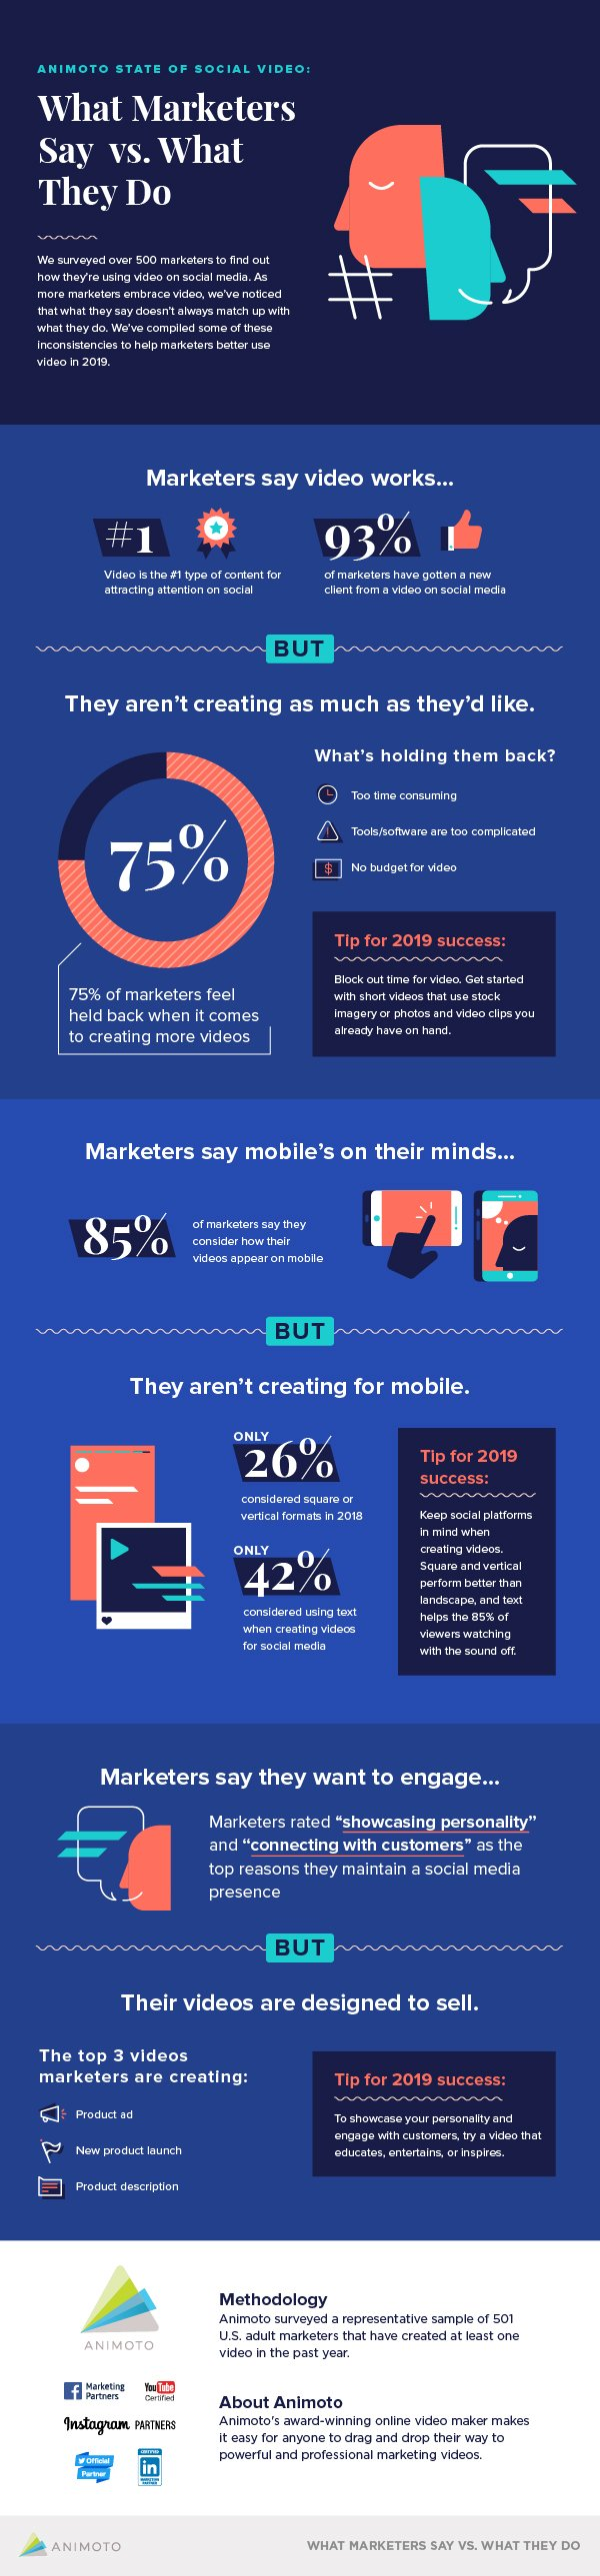 marketer-say-do-infographic